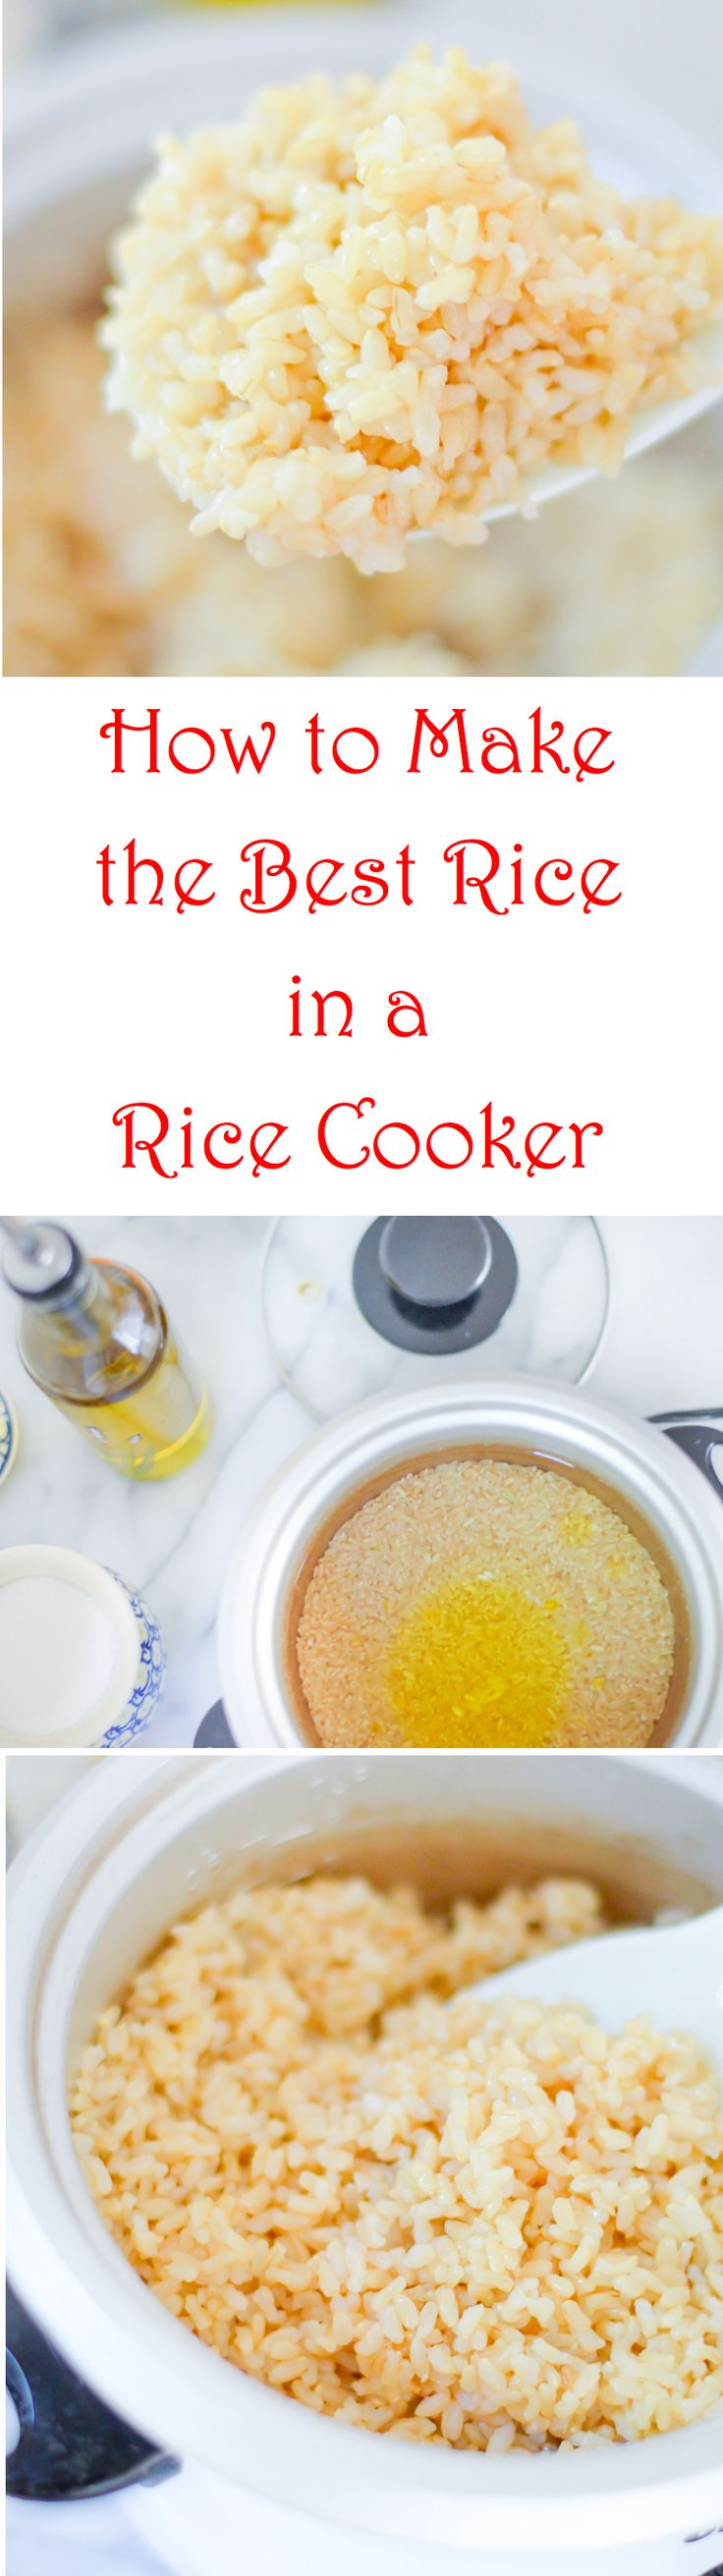 How to Make the Best Rice in a Rice Cooker. Adding these two ingredients you already have in your cupboard will give you delicious, moist rice every time.